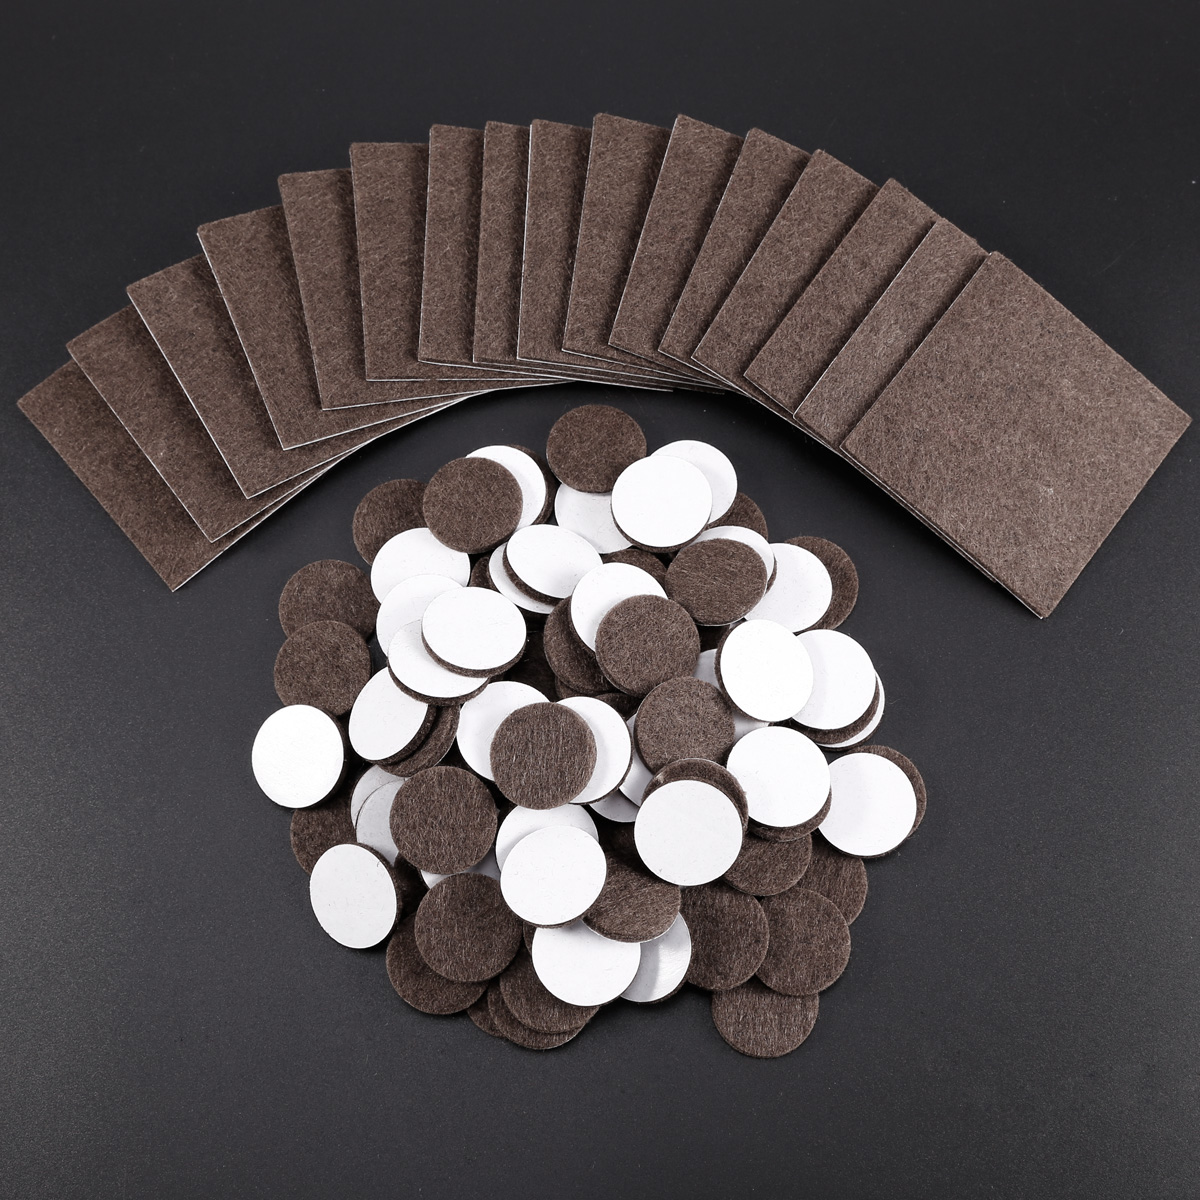 112x Mixed Solid Wood Protection Laminate Floor Furniture Protector Felt Pads Ebay